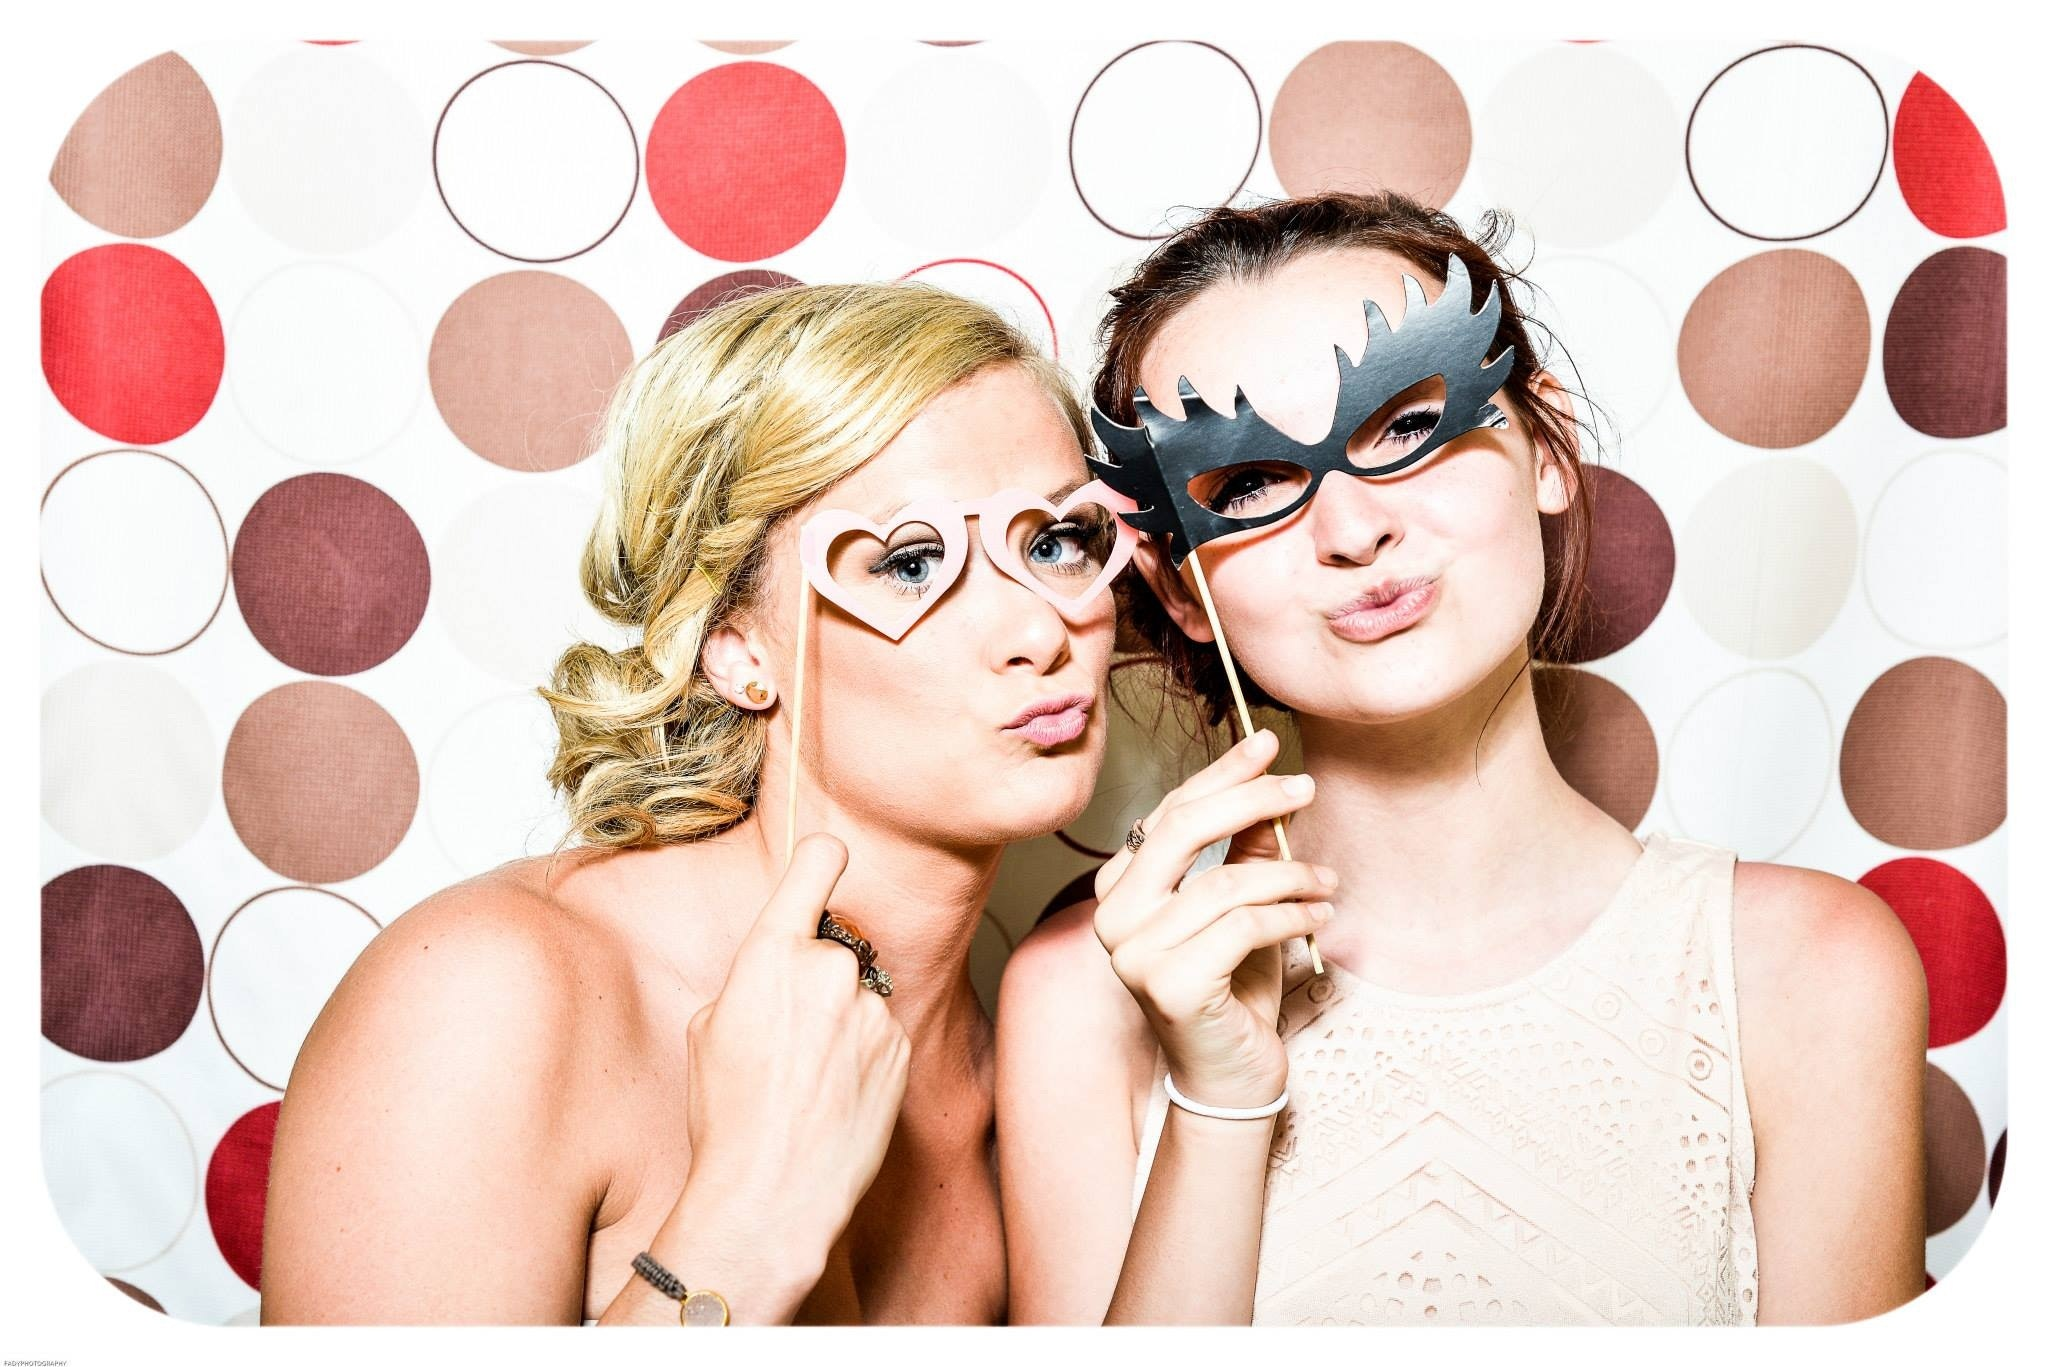 Two women taking picture in photo booth. See our photo booth options.